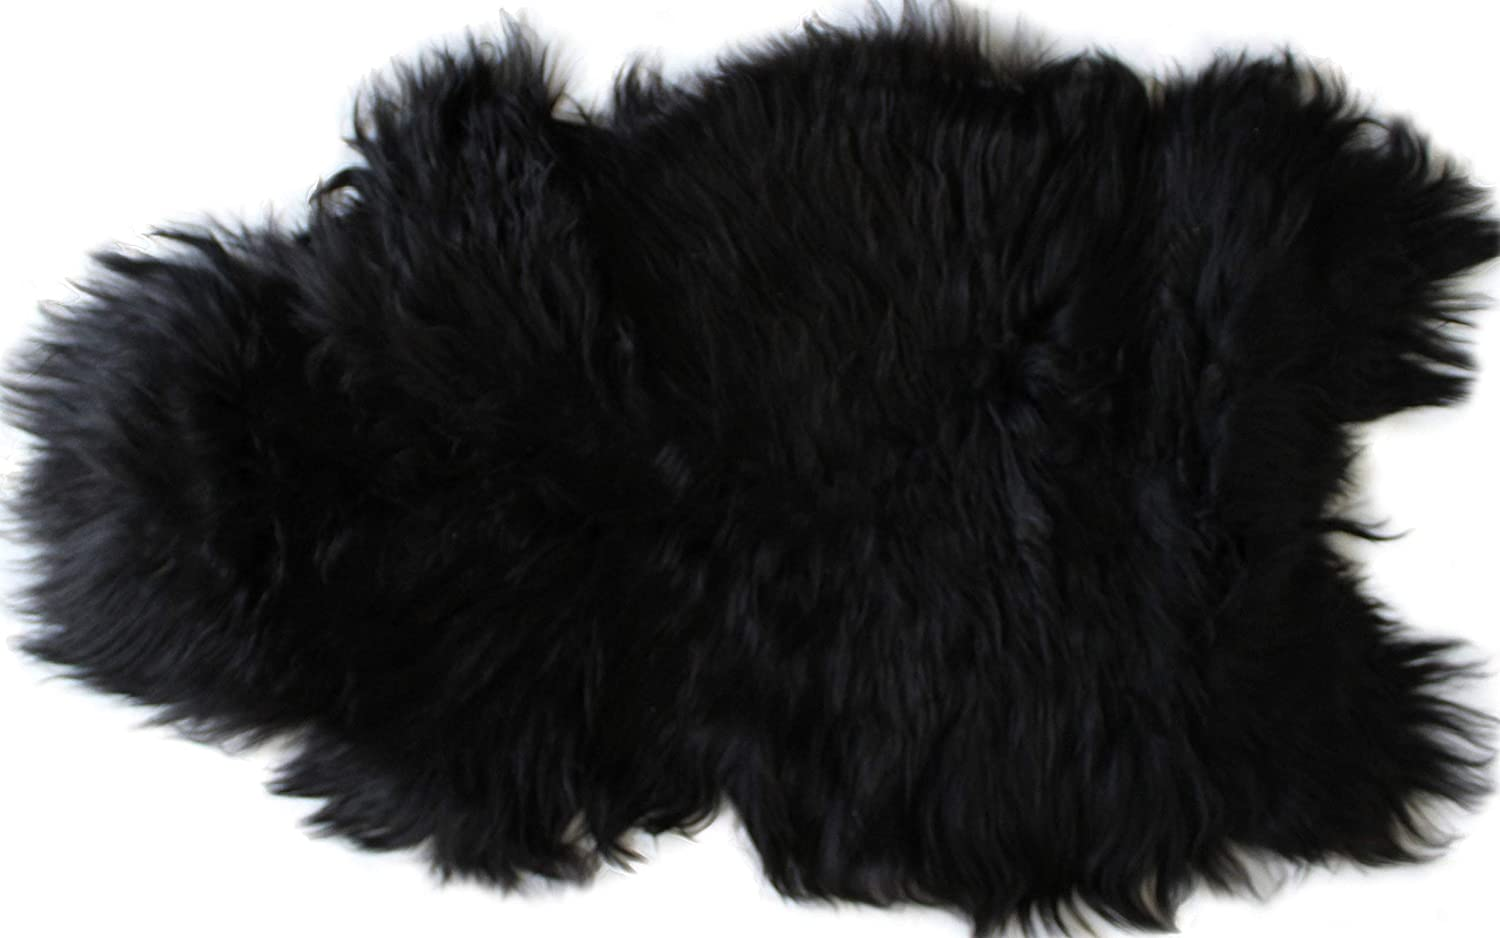 Home Collezione by Salvani Genuine Icelandic Sheepskin Rug Throw (Black Balck)